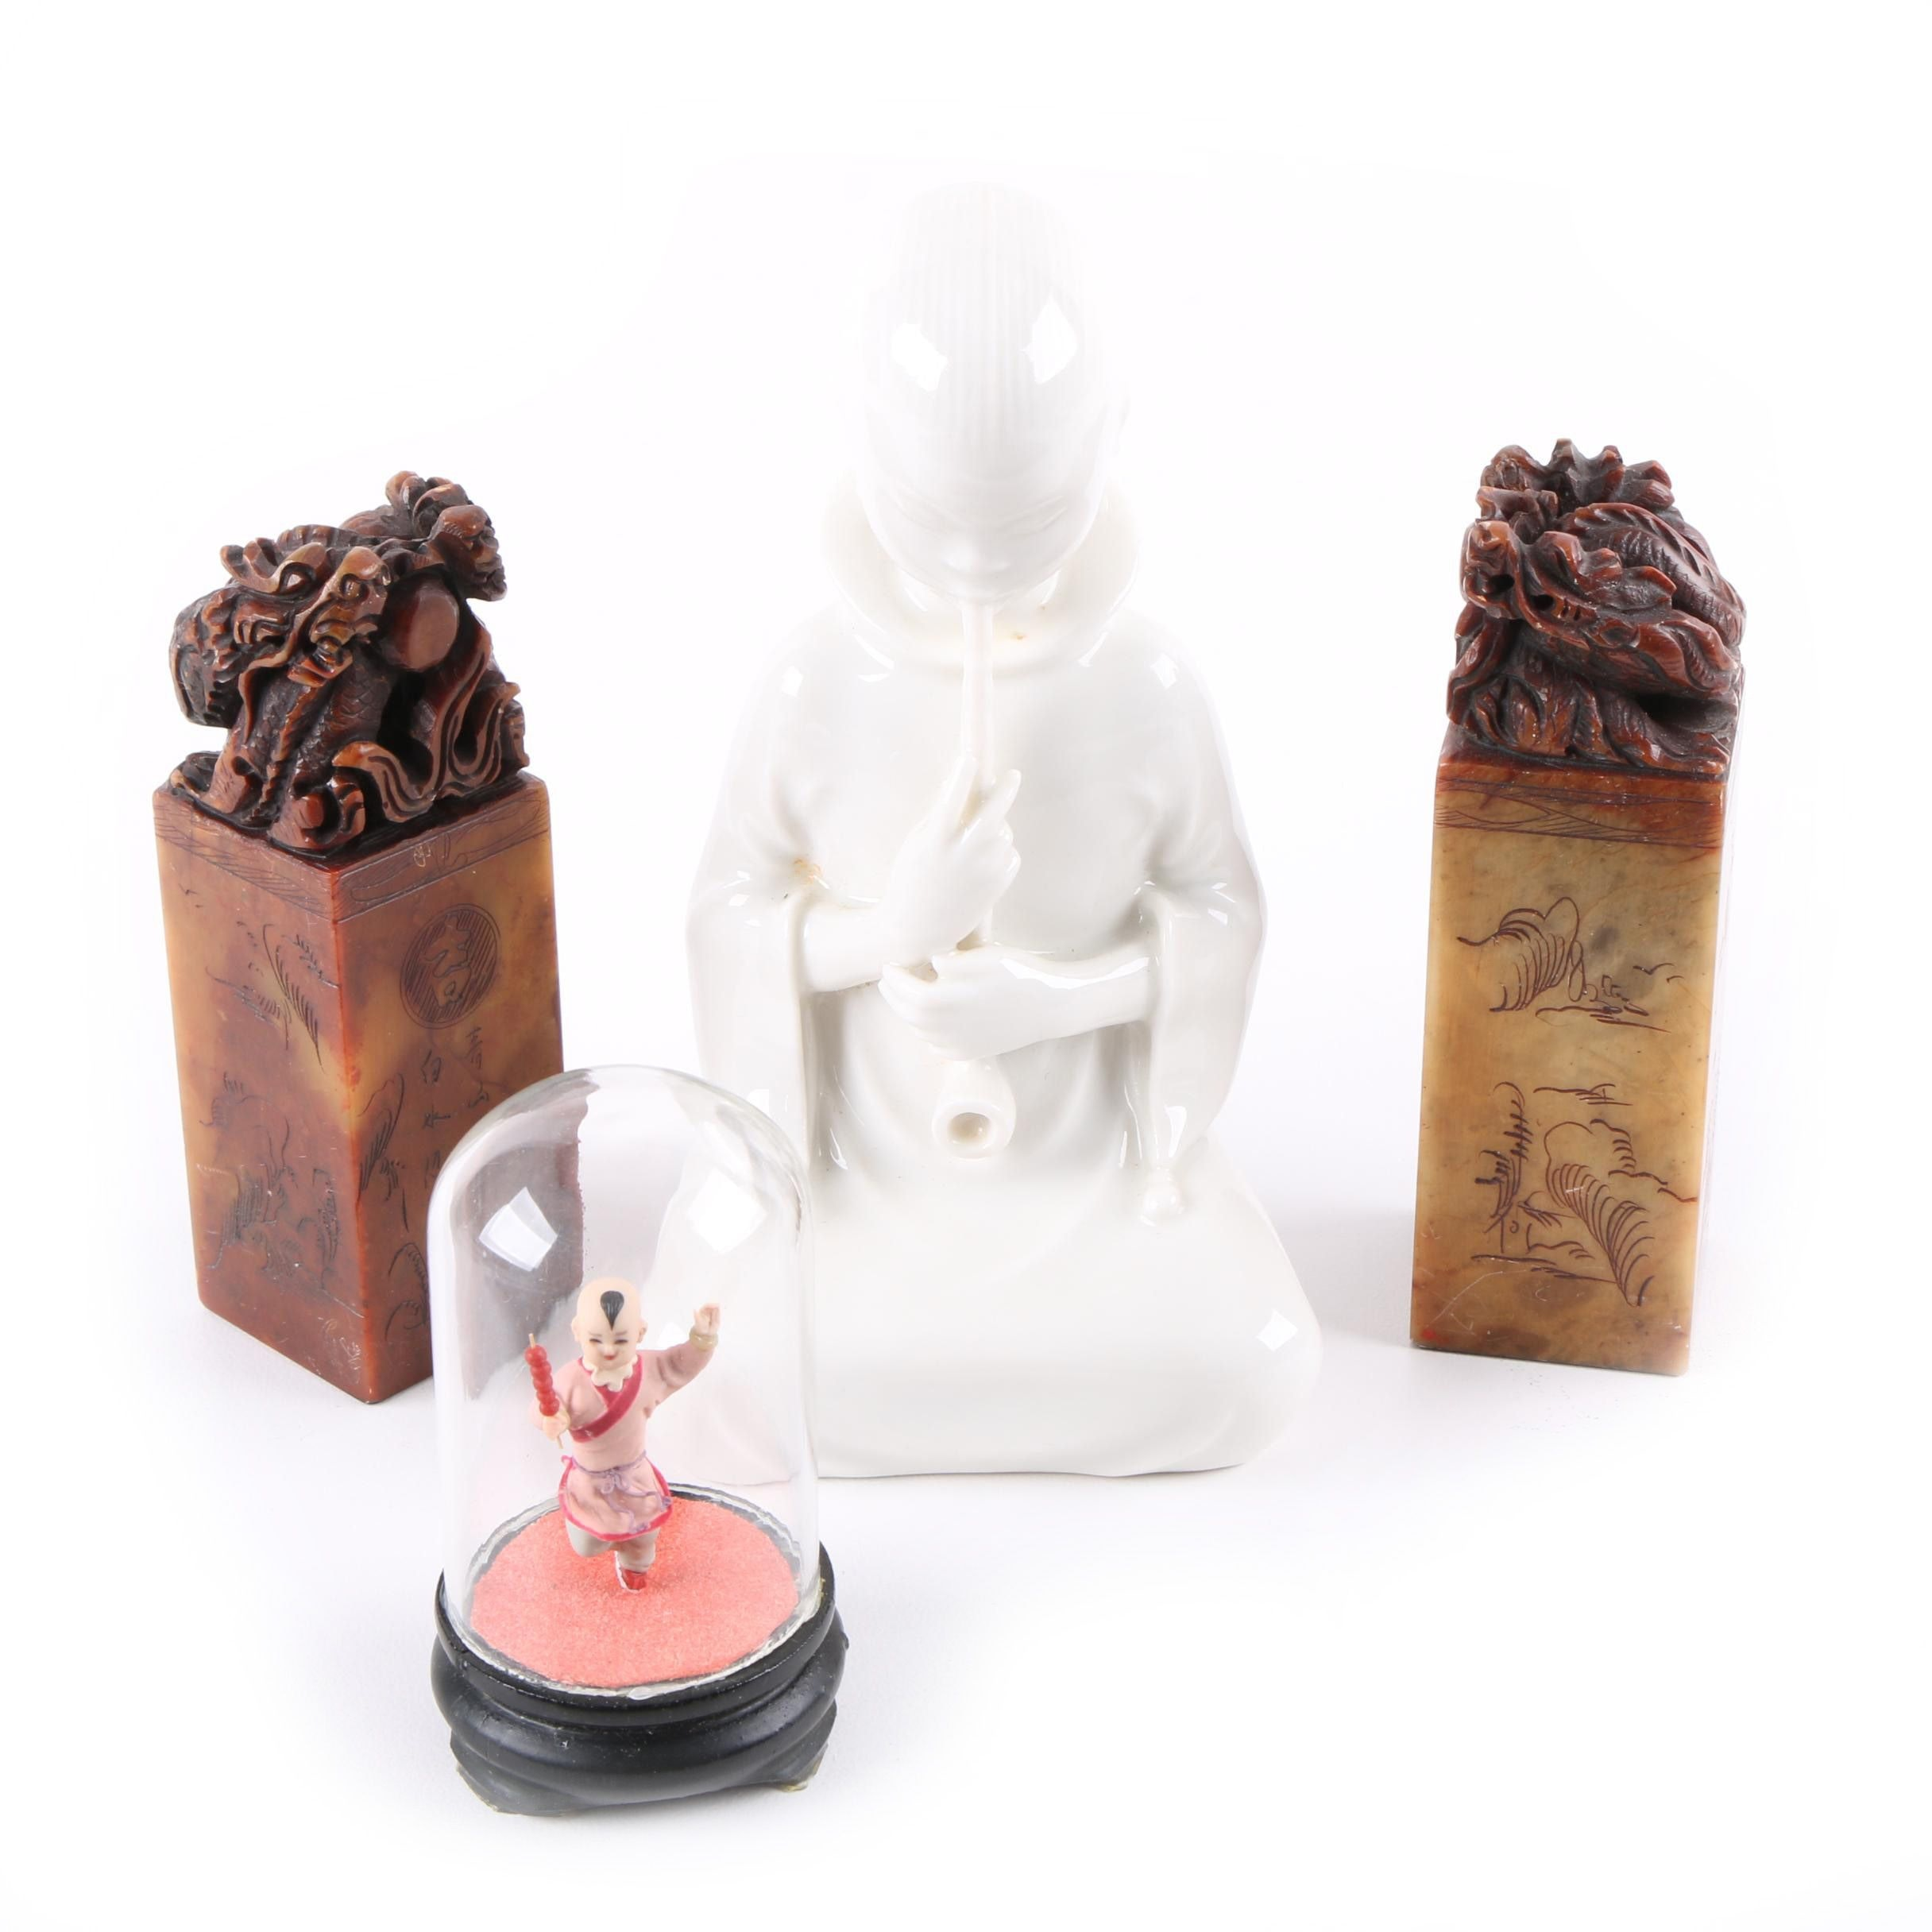 Porcelain Figurines with Soapstone Chops